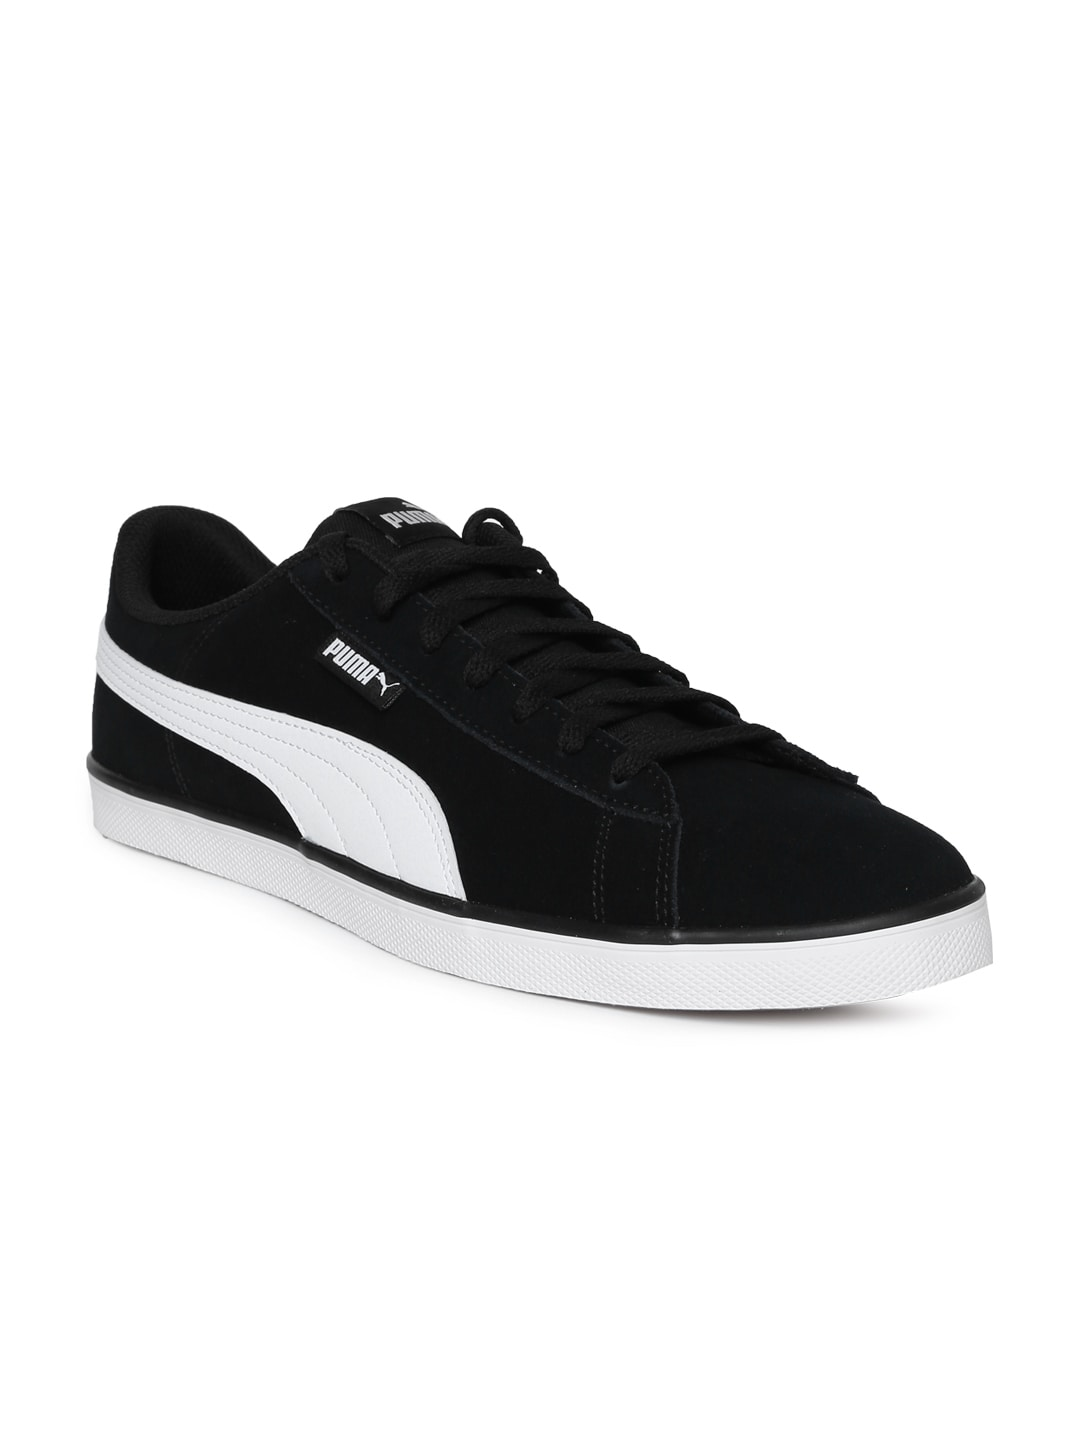 3f5c4ae4f4a5cc Puma Suede Shoe - Buy Puma Suede Shoe online in India